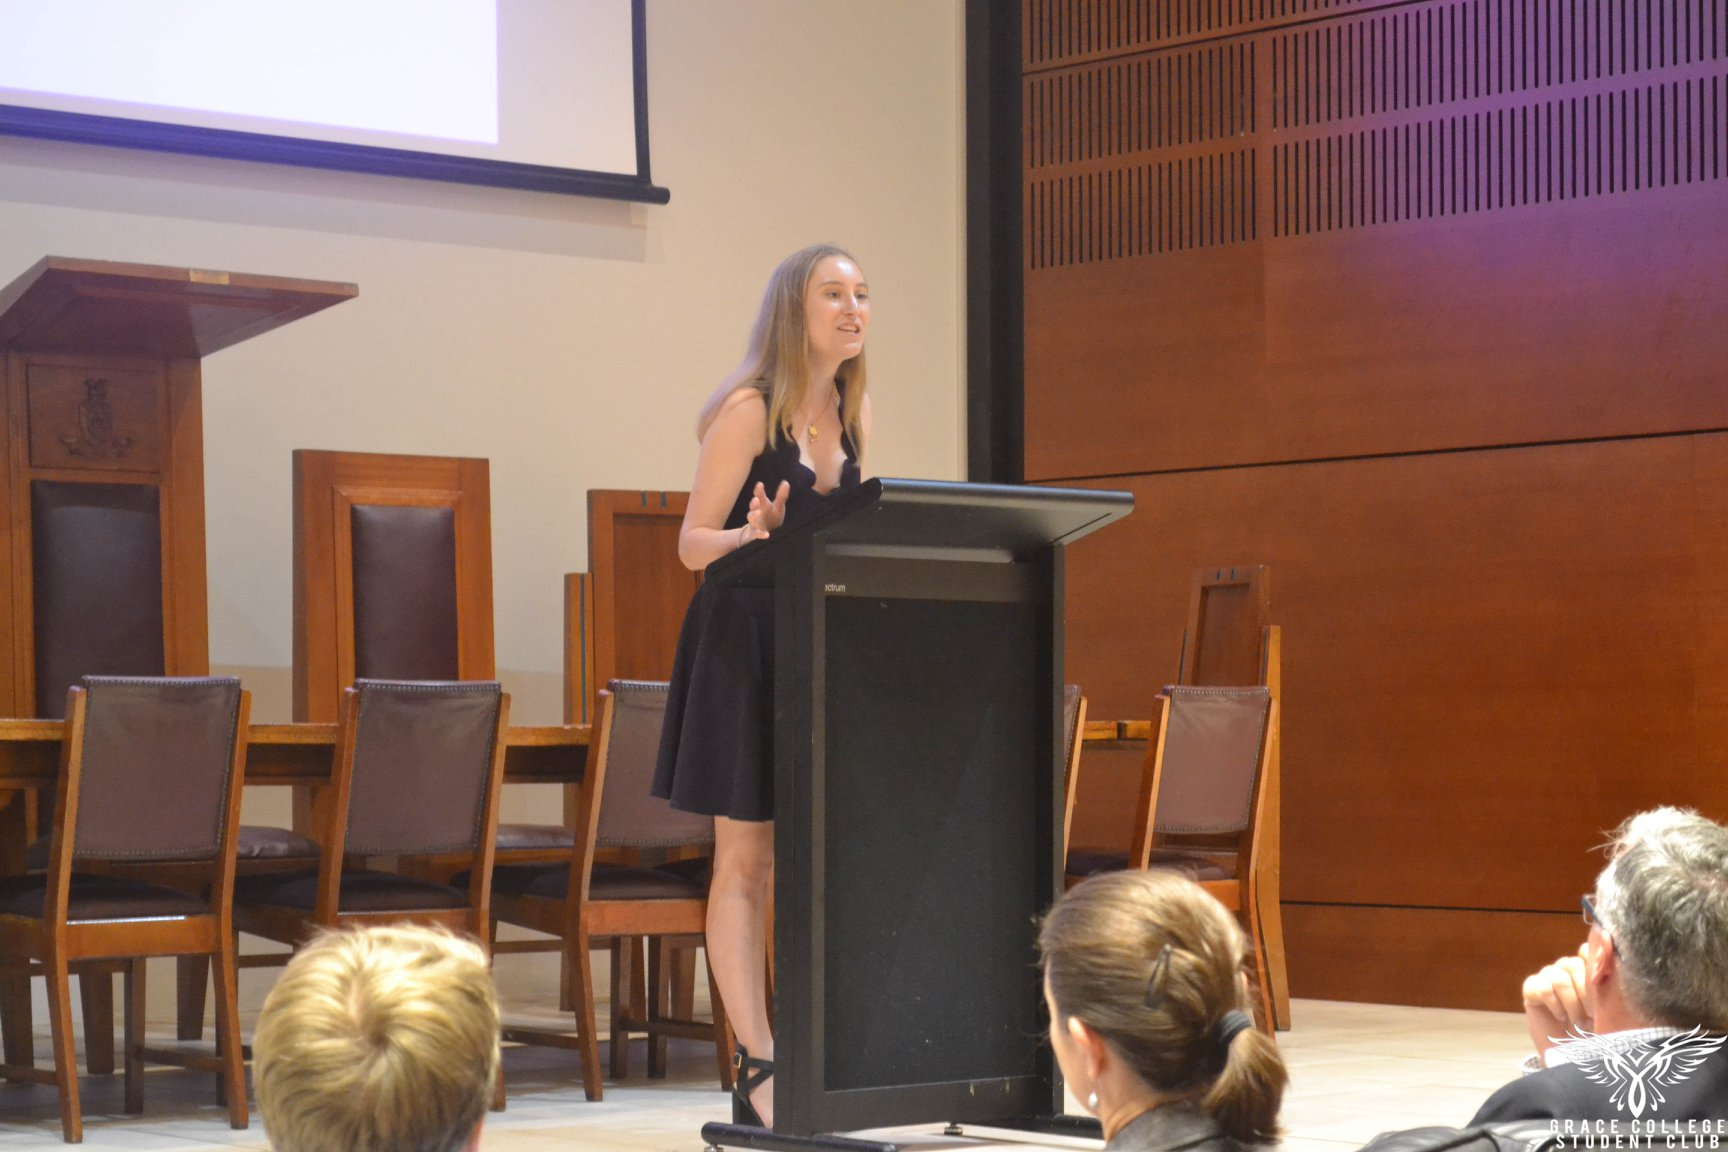 Oratory competitor speaking at a lectern